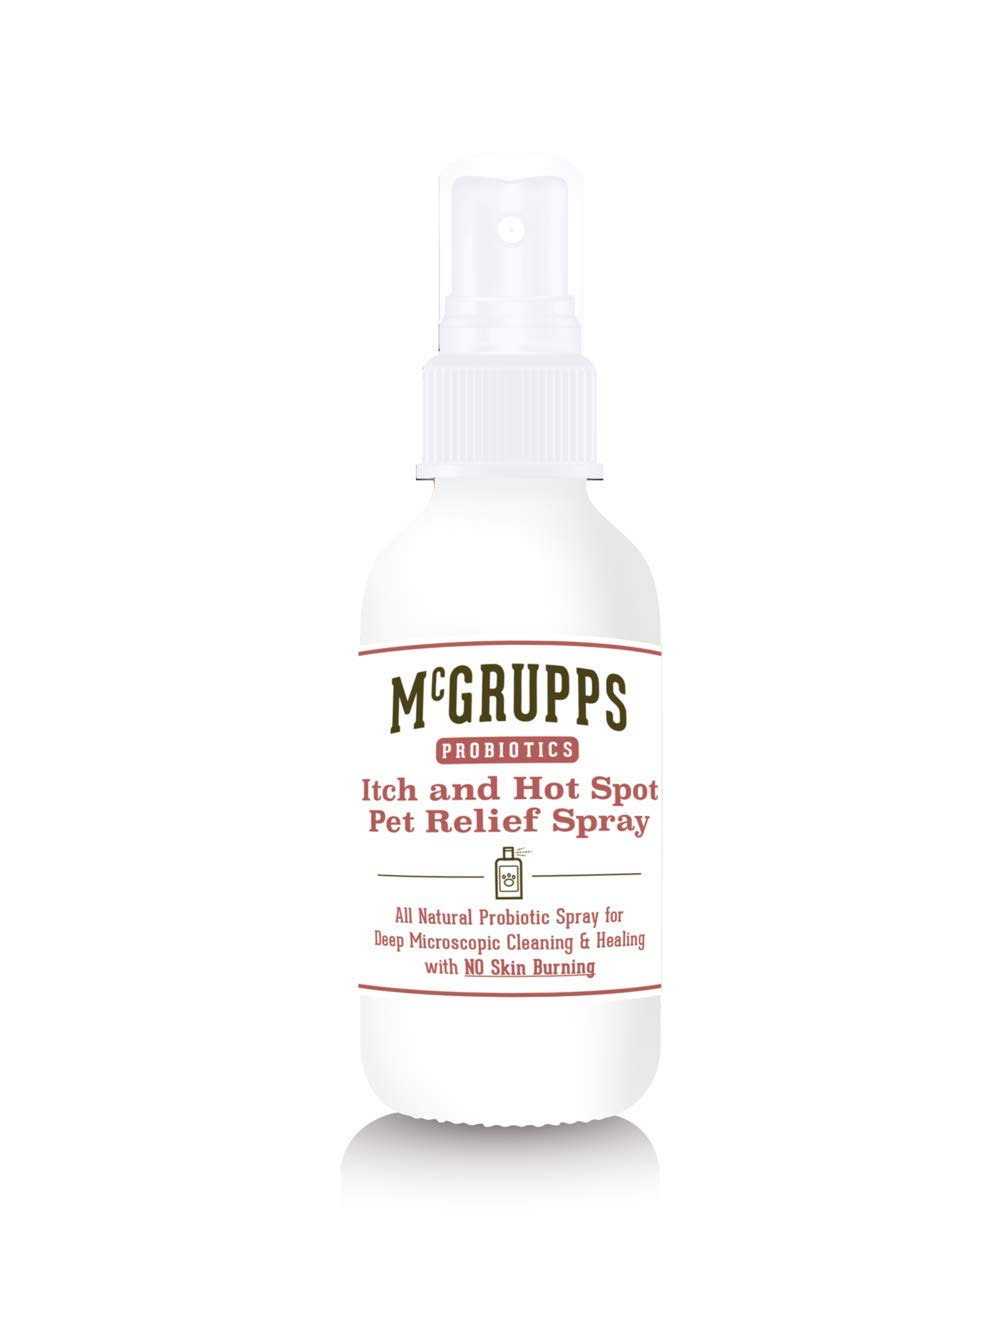 Mcgrupps Vet Approved Itch & Hotspot Probiotic Spray for Dogs | All Natural Odorless Tasteless Skin Irritation Relief | Allergy and Coat Treatment | Made and Bottled in The USA by Mcgrupps